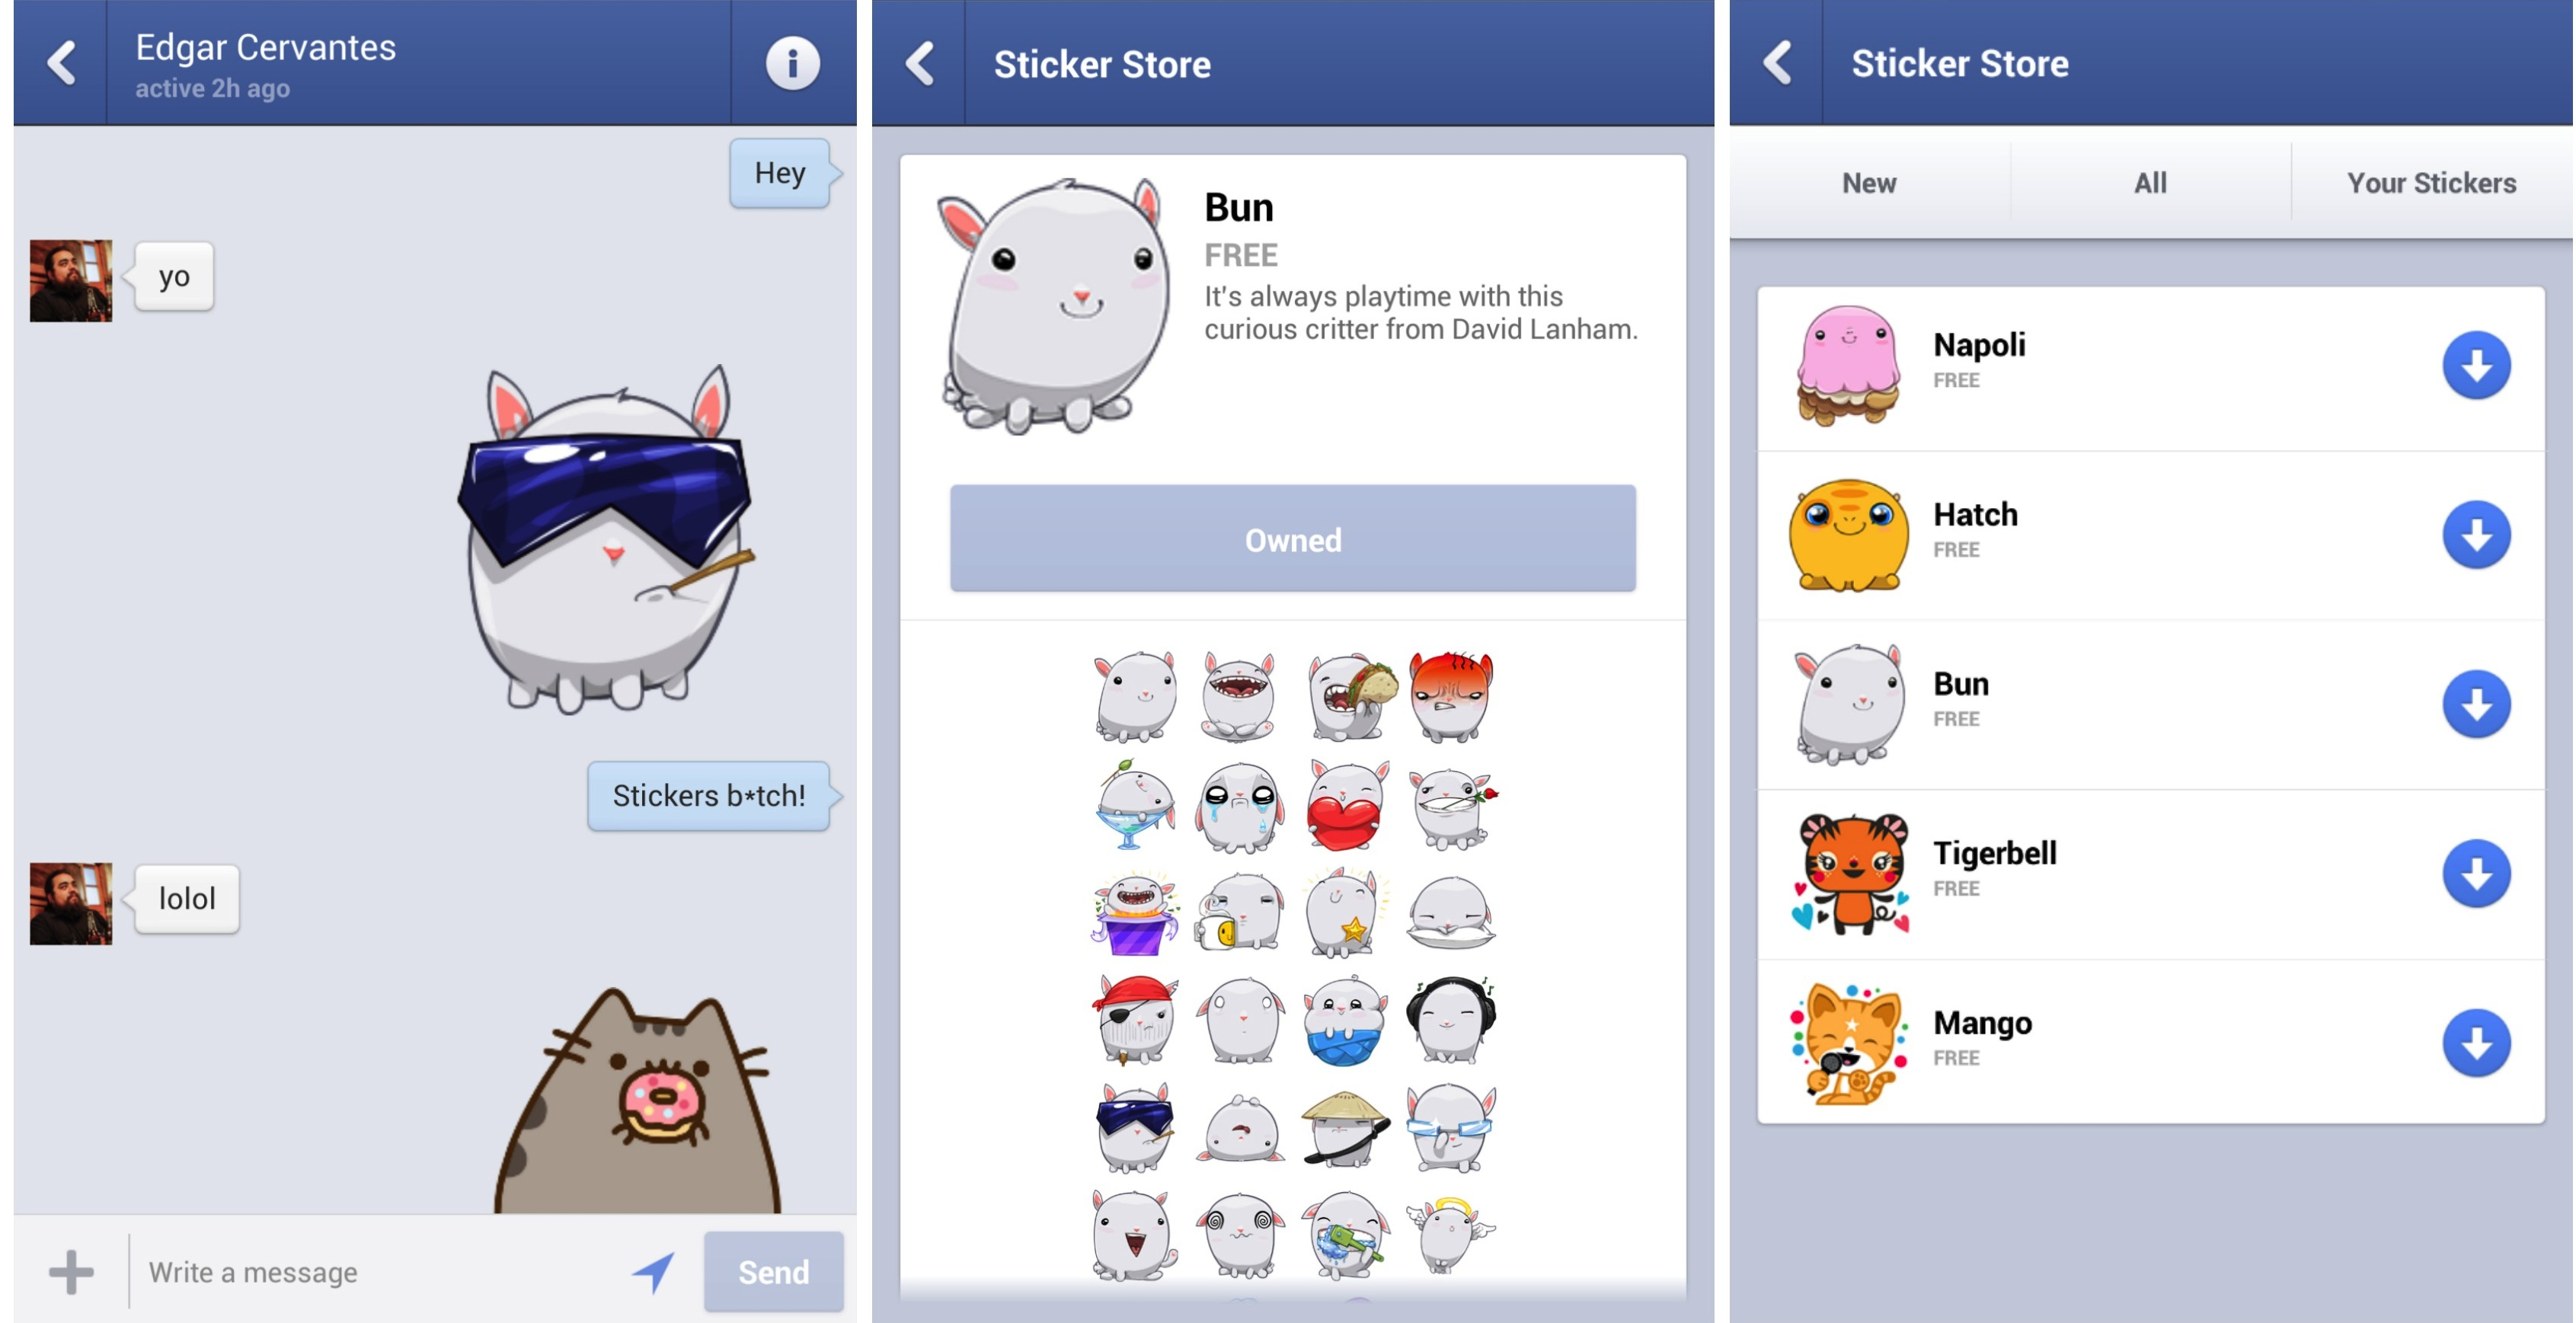 Facebook messenger update brings cutesy stickers to messaging app